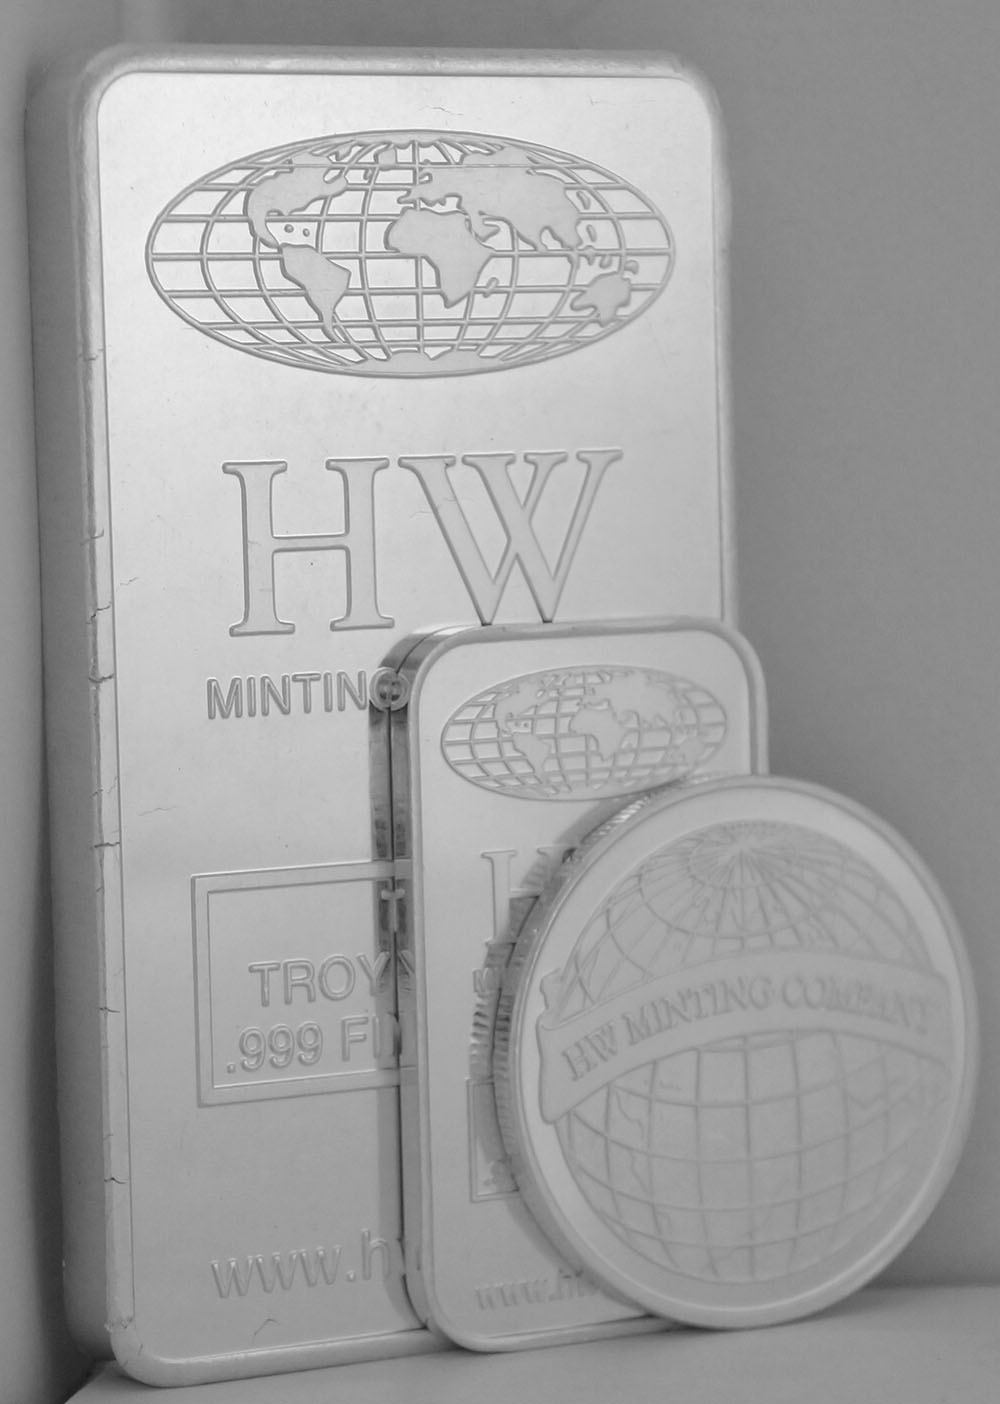 HW Minting Co Silver